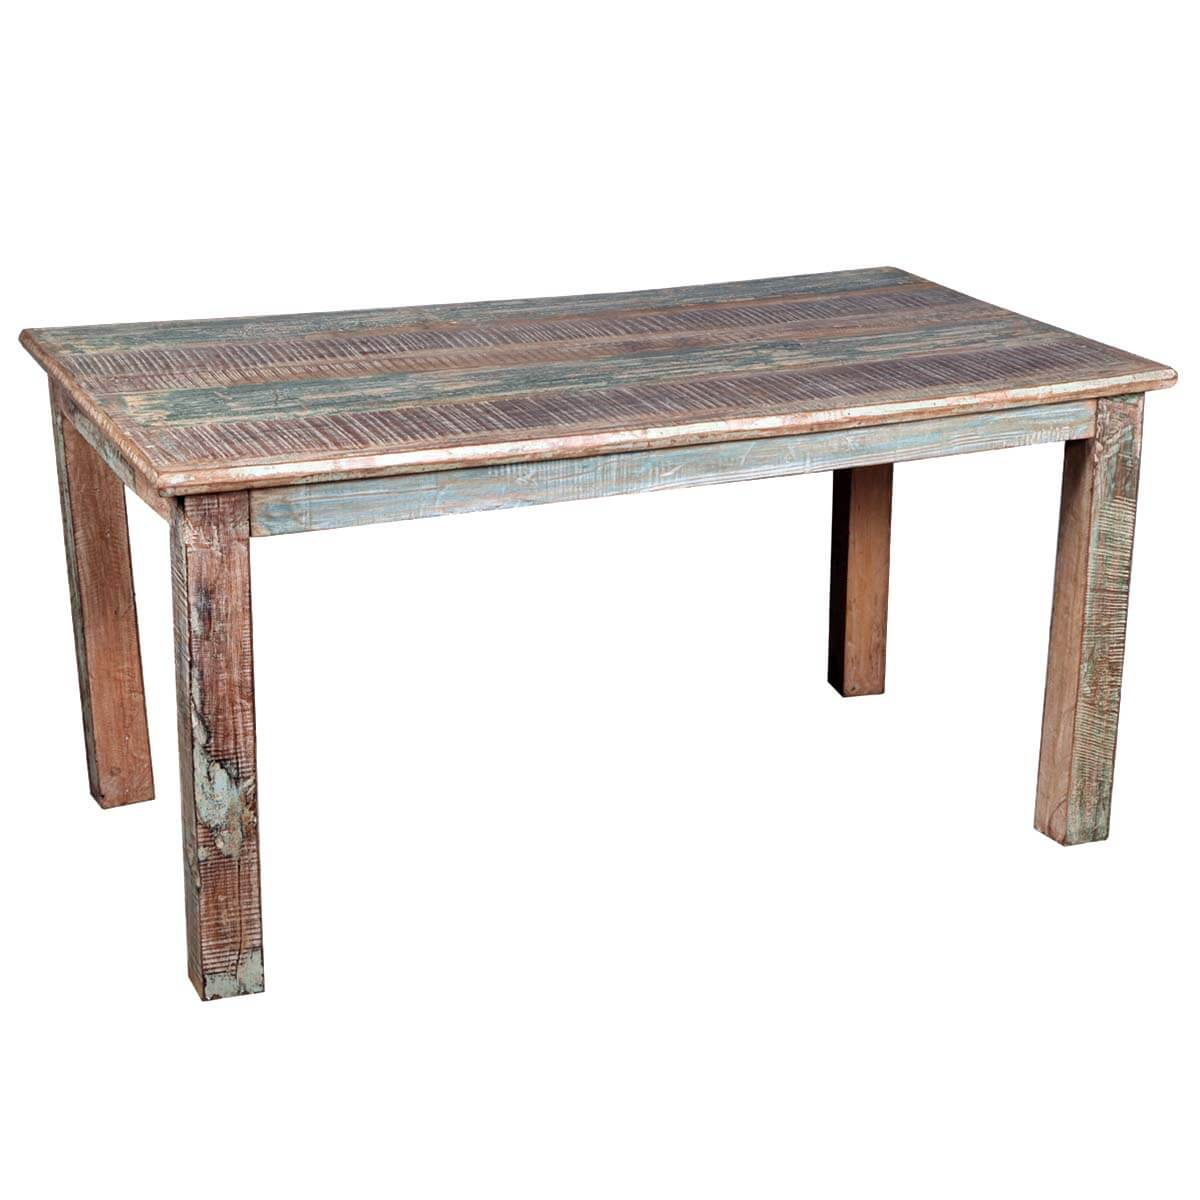 Rustic reclaimed wood distressed kitchen dining table Rustic wood dining table